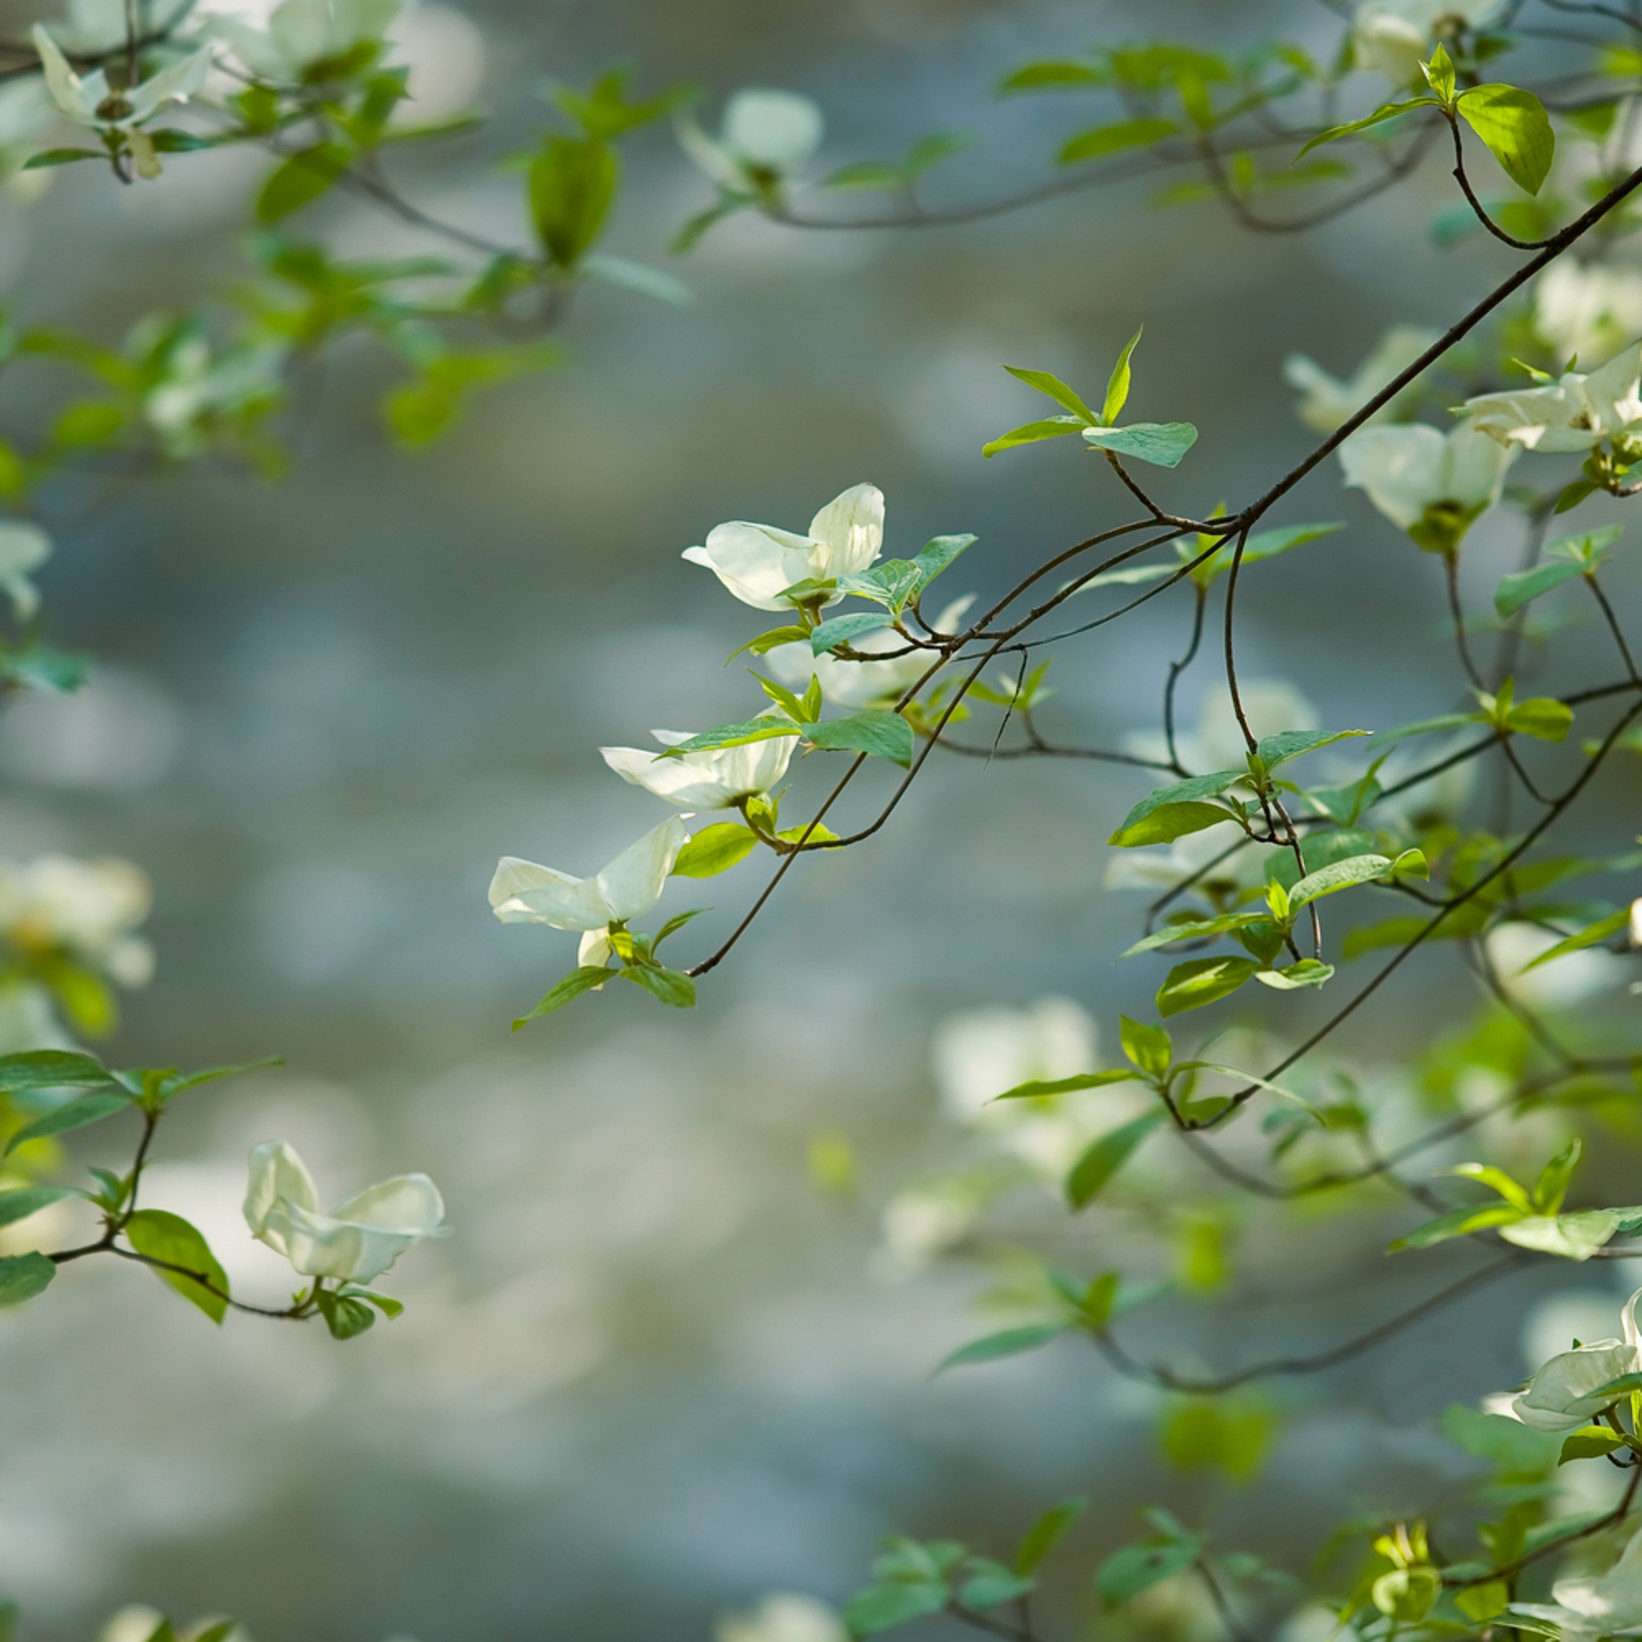 Dogwood blossoms cw38or